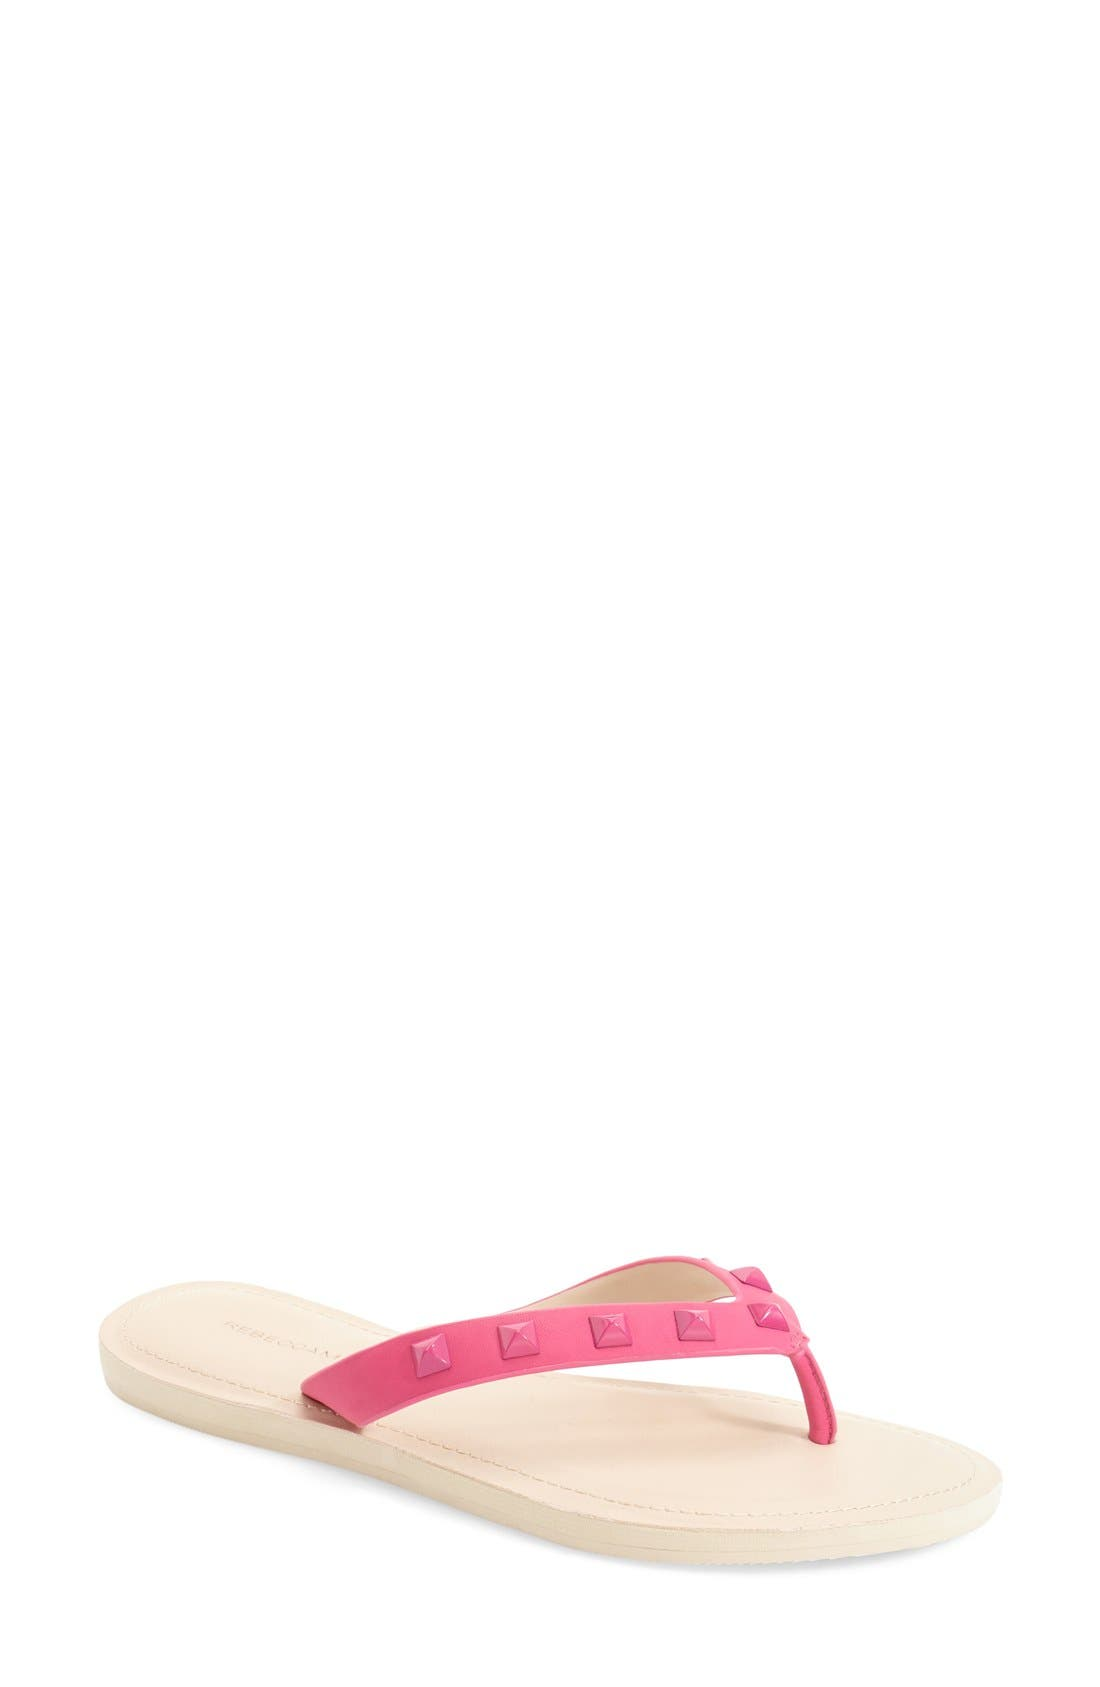 'Fiona' Thong Sandal,                         Main,                         color, Fuchsia Nappa